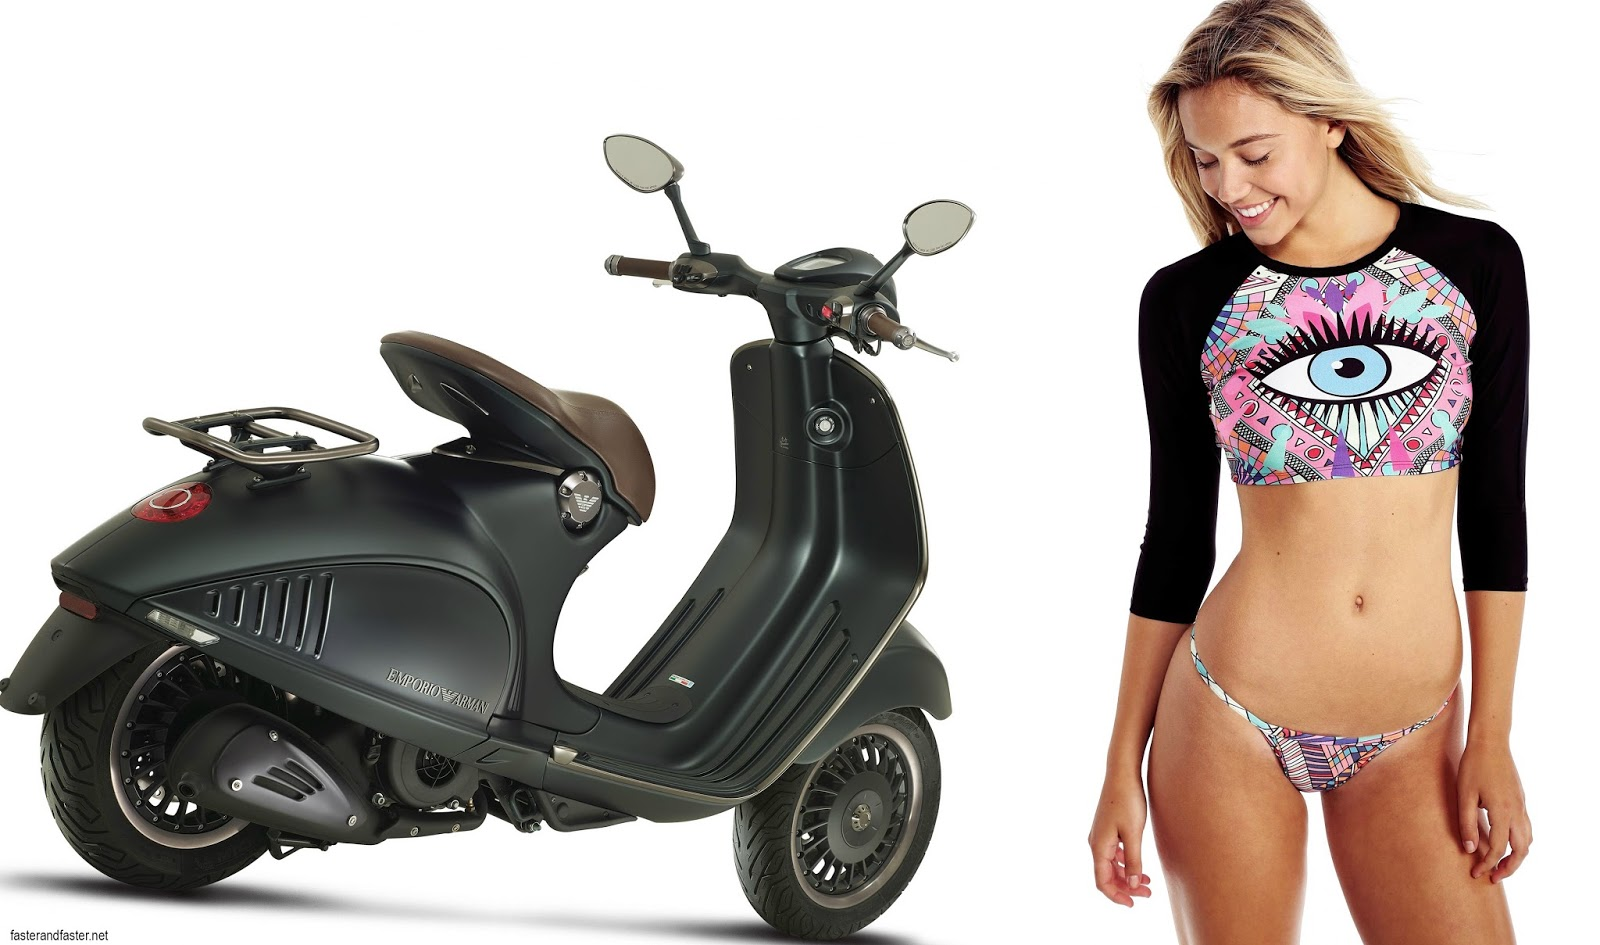 New Vespa 946 Emporio Armani Hd Photos Types Cars